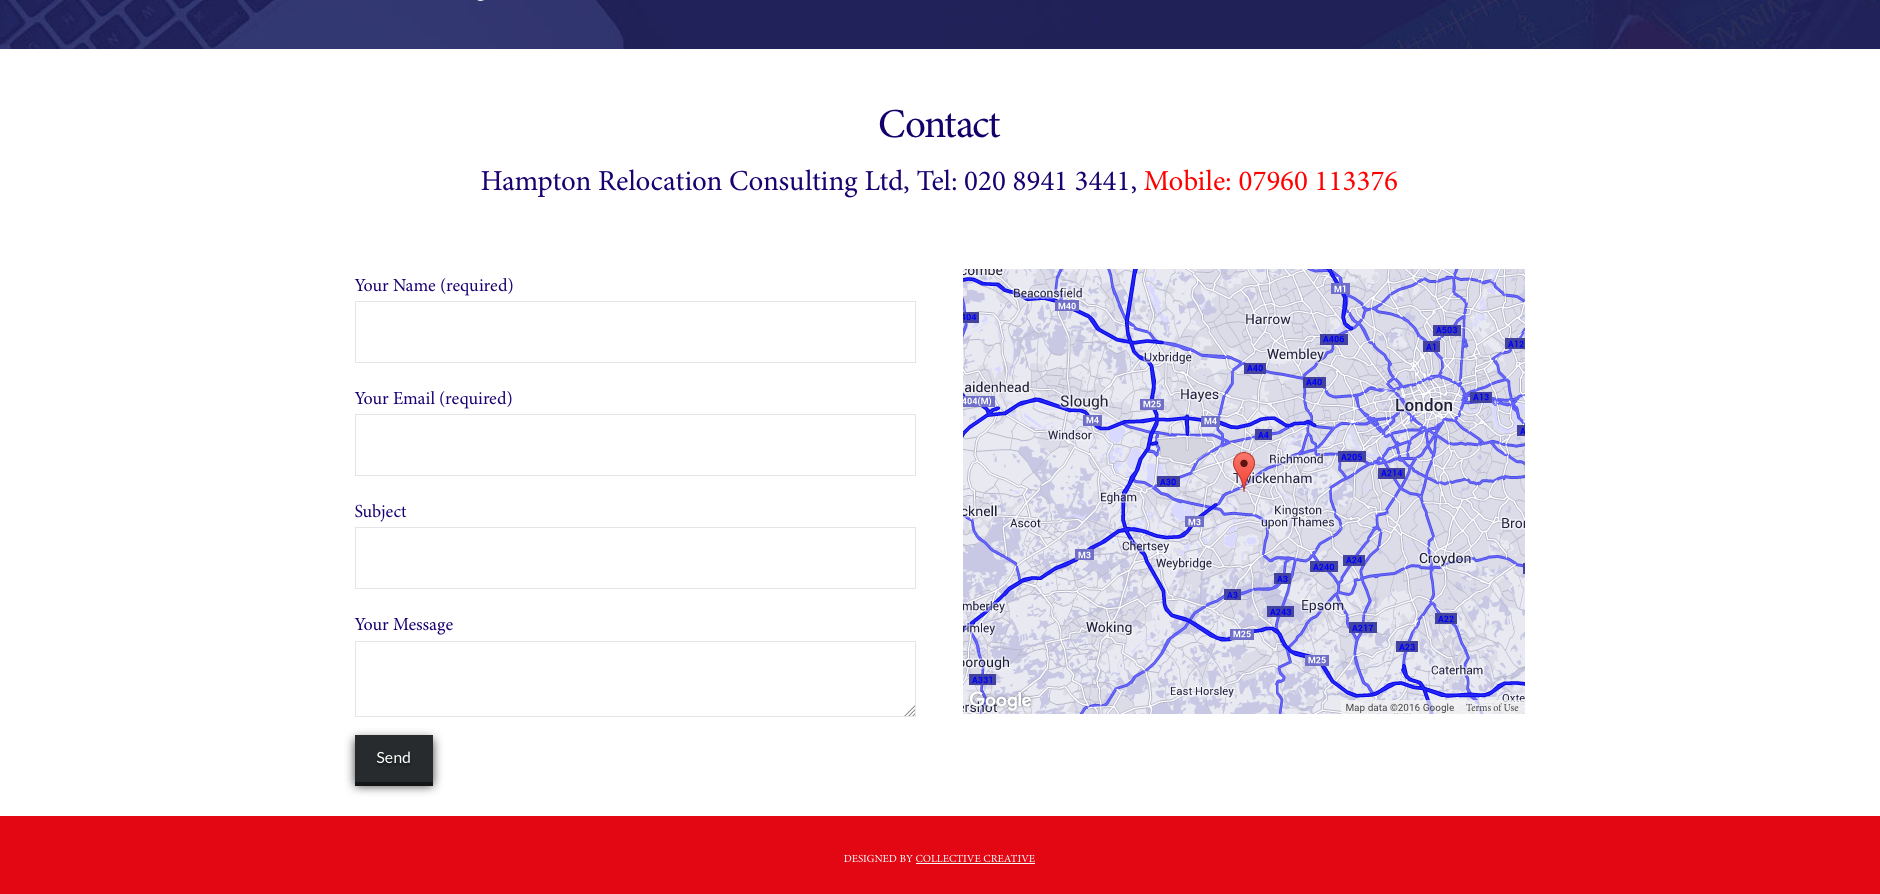 Hampton Relocation website contact section